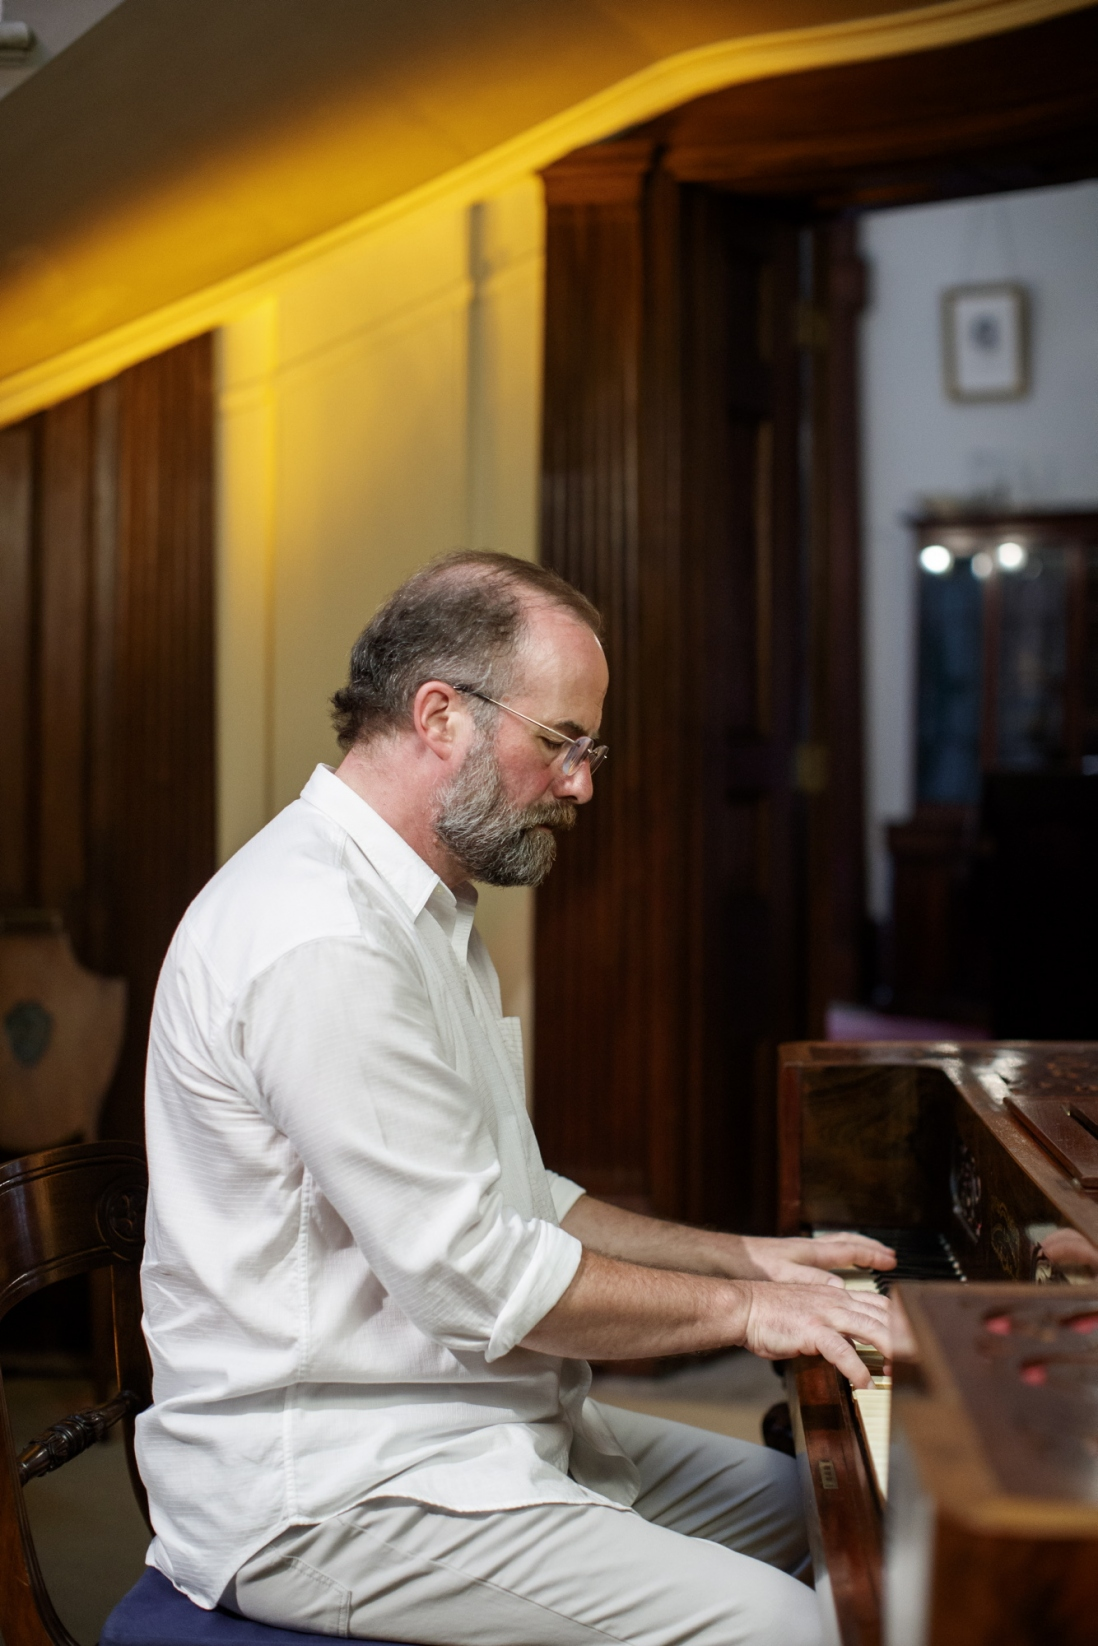 Ian Blake, composer and performer, playing piano in the saloon at Elizabeth Bay House